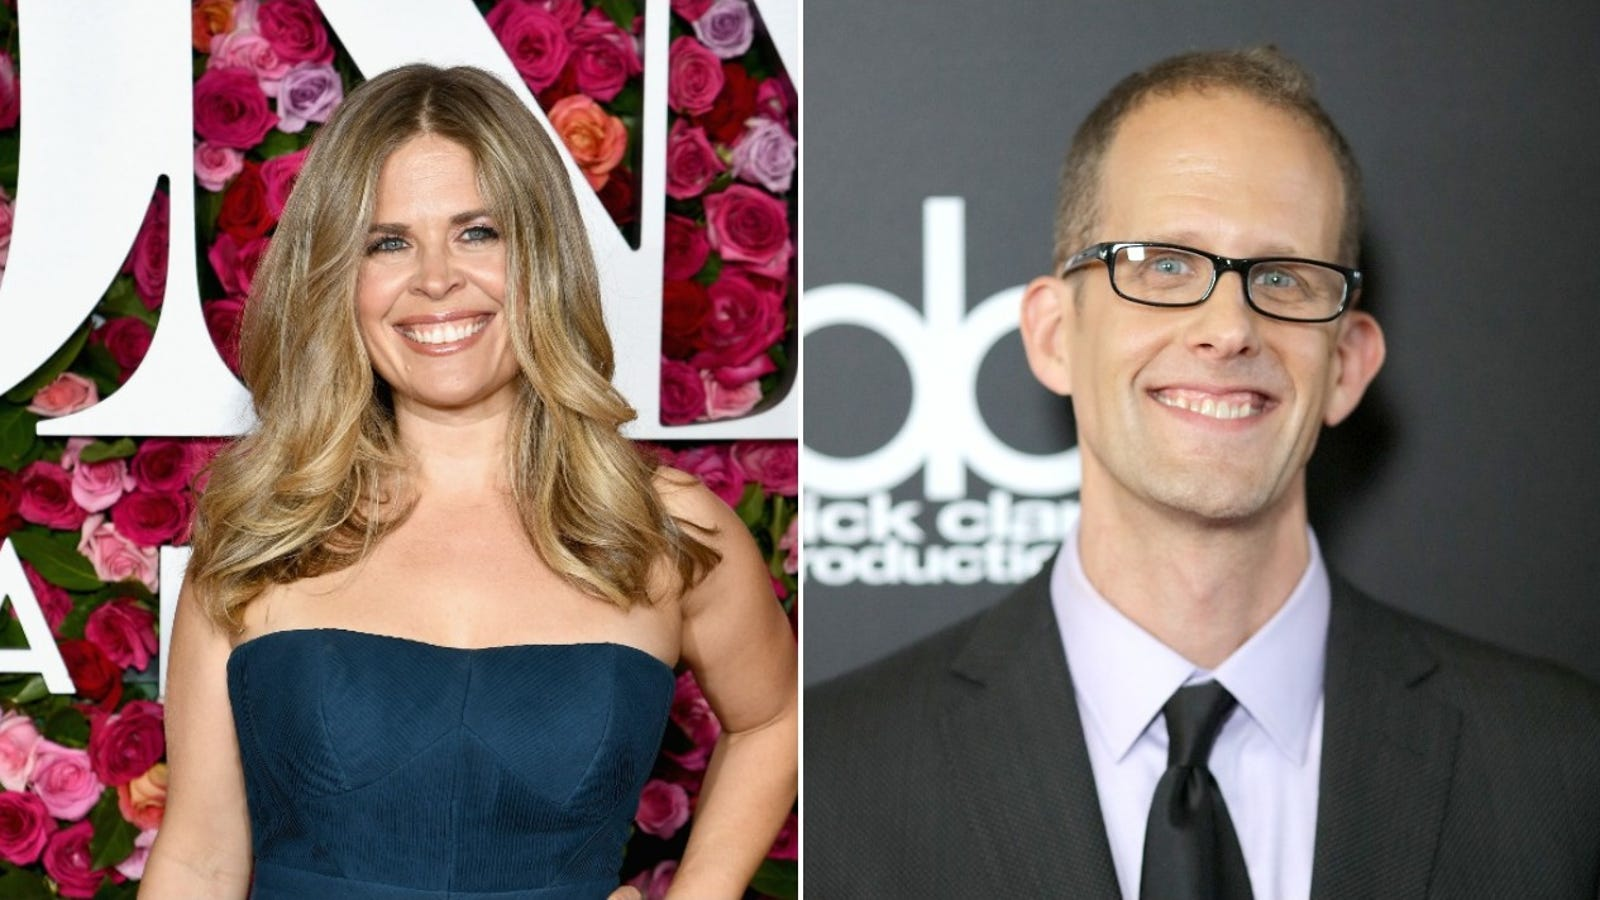 Frozen and Inside Out directors to replace John Lasseter at Disney and Pixar